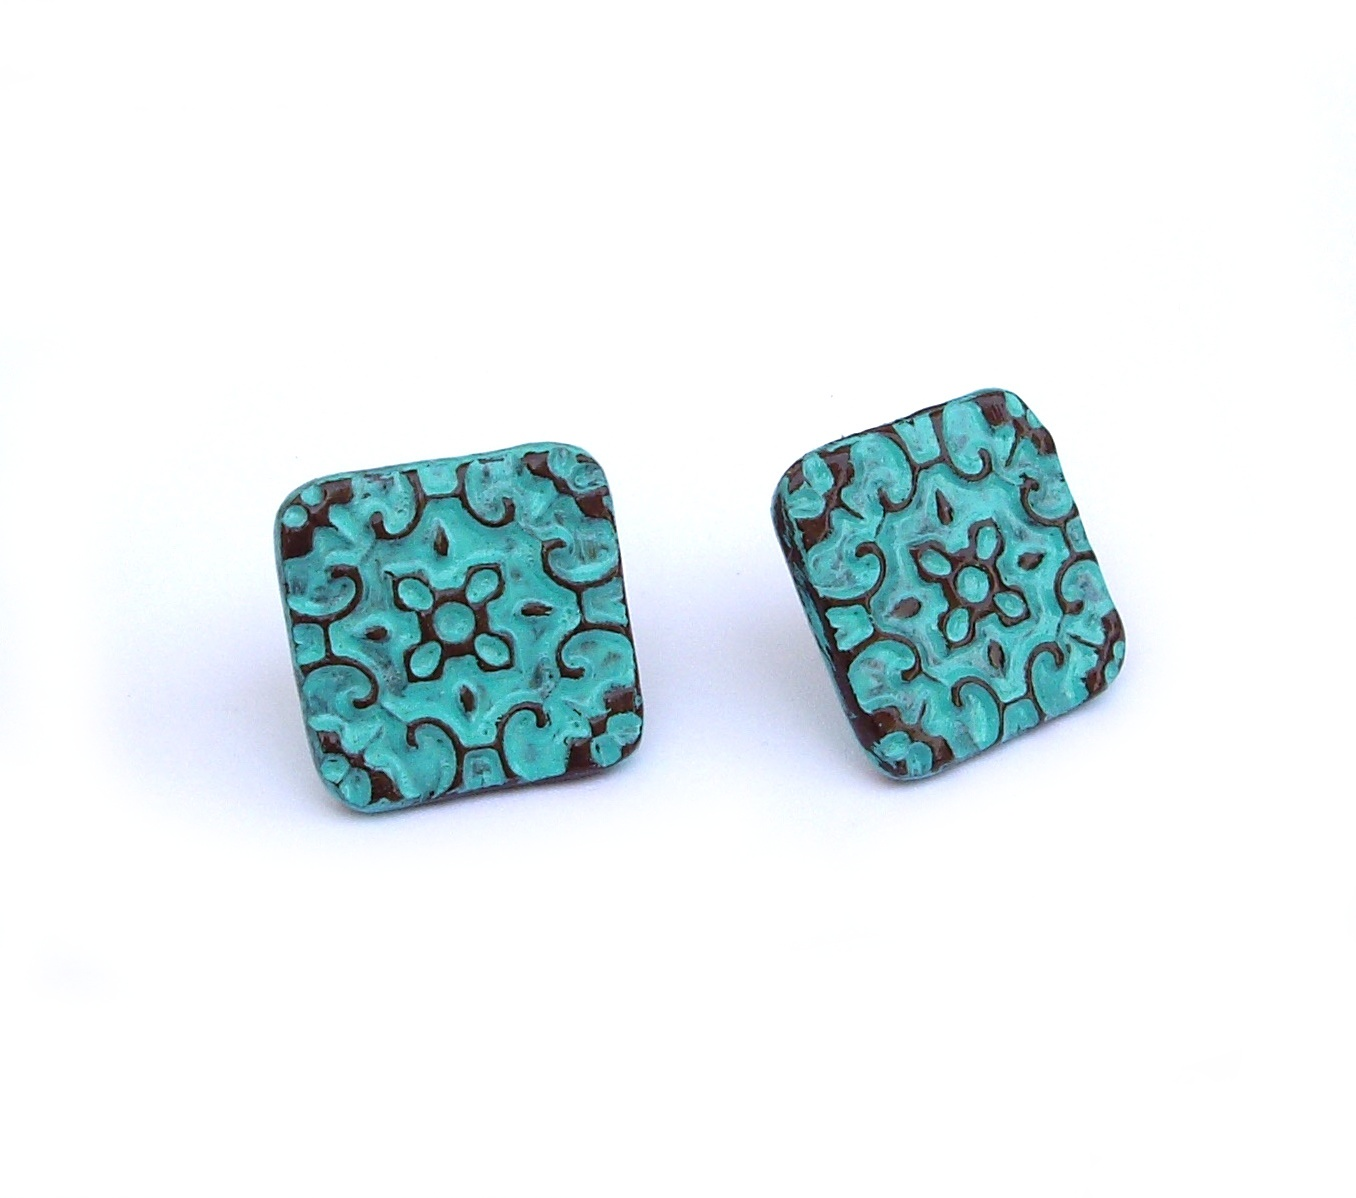 JP with love Jewelry And Hair Accessories Blog: Teal ...